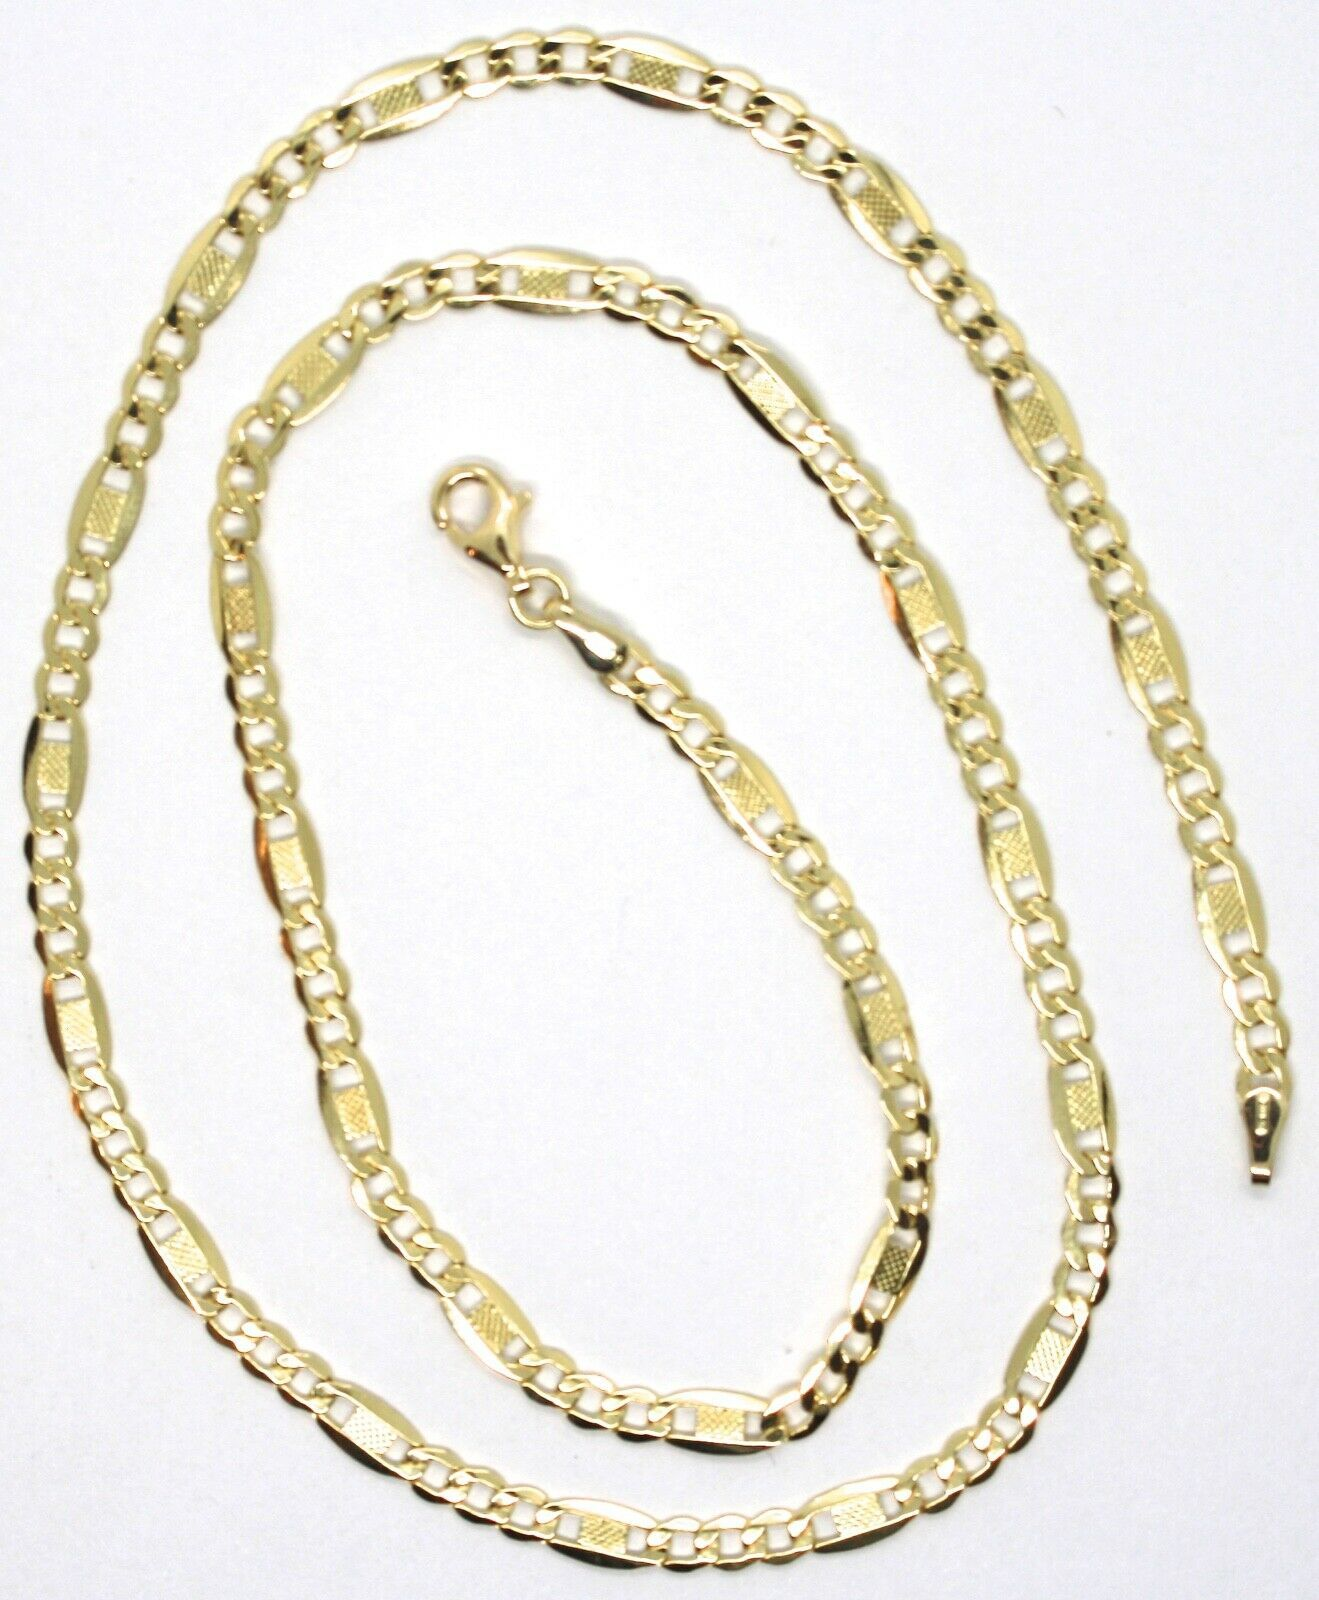 Chain Yellow Gold 18K 750, 50 cm, Curb Flat and Plates Bluebeat, 4 MM image 4